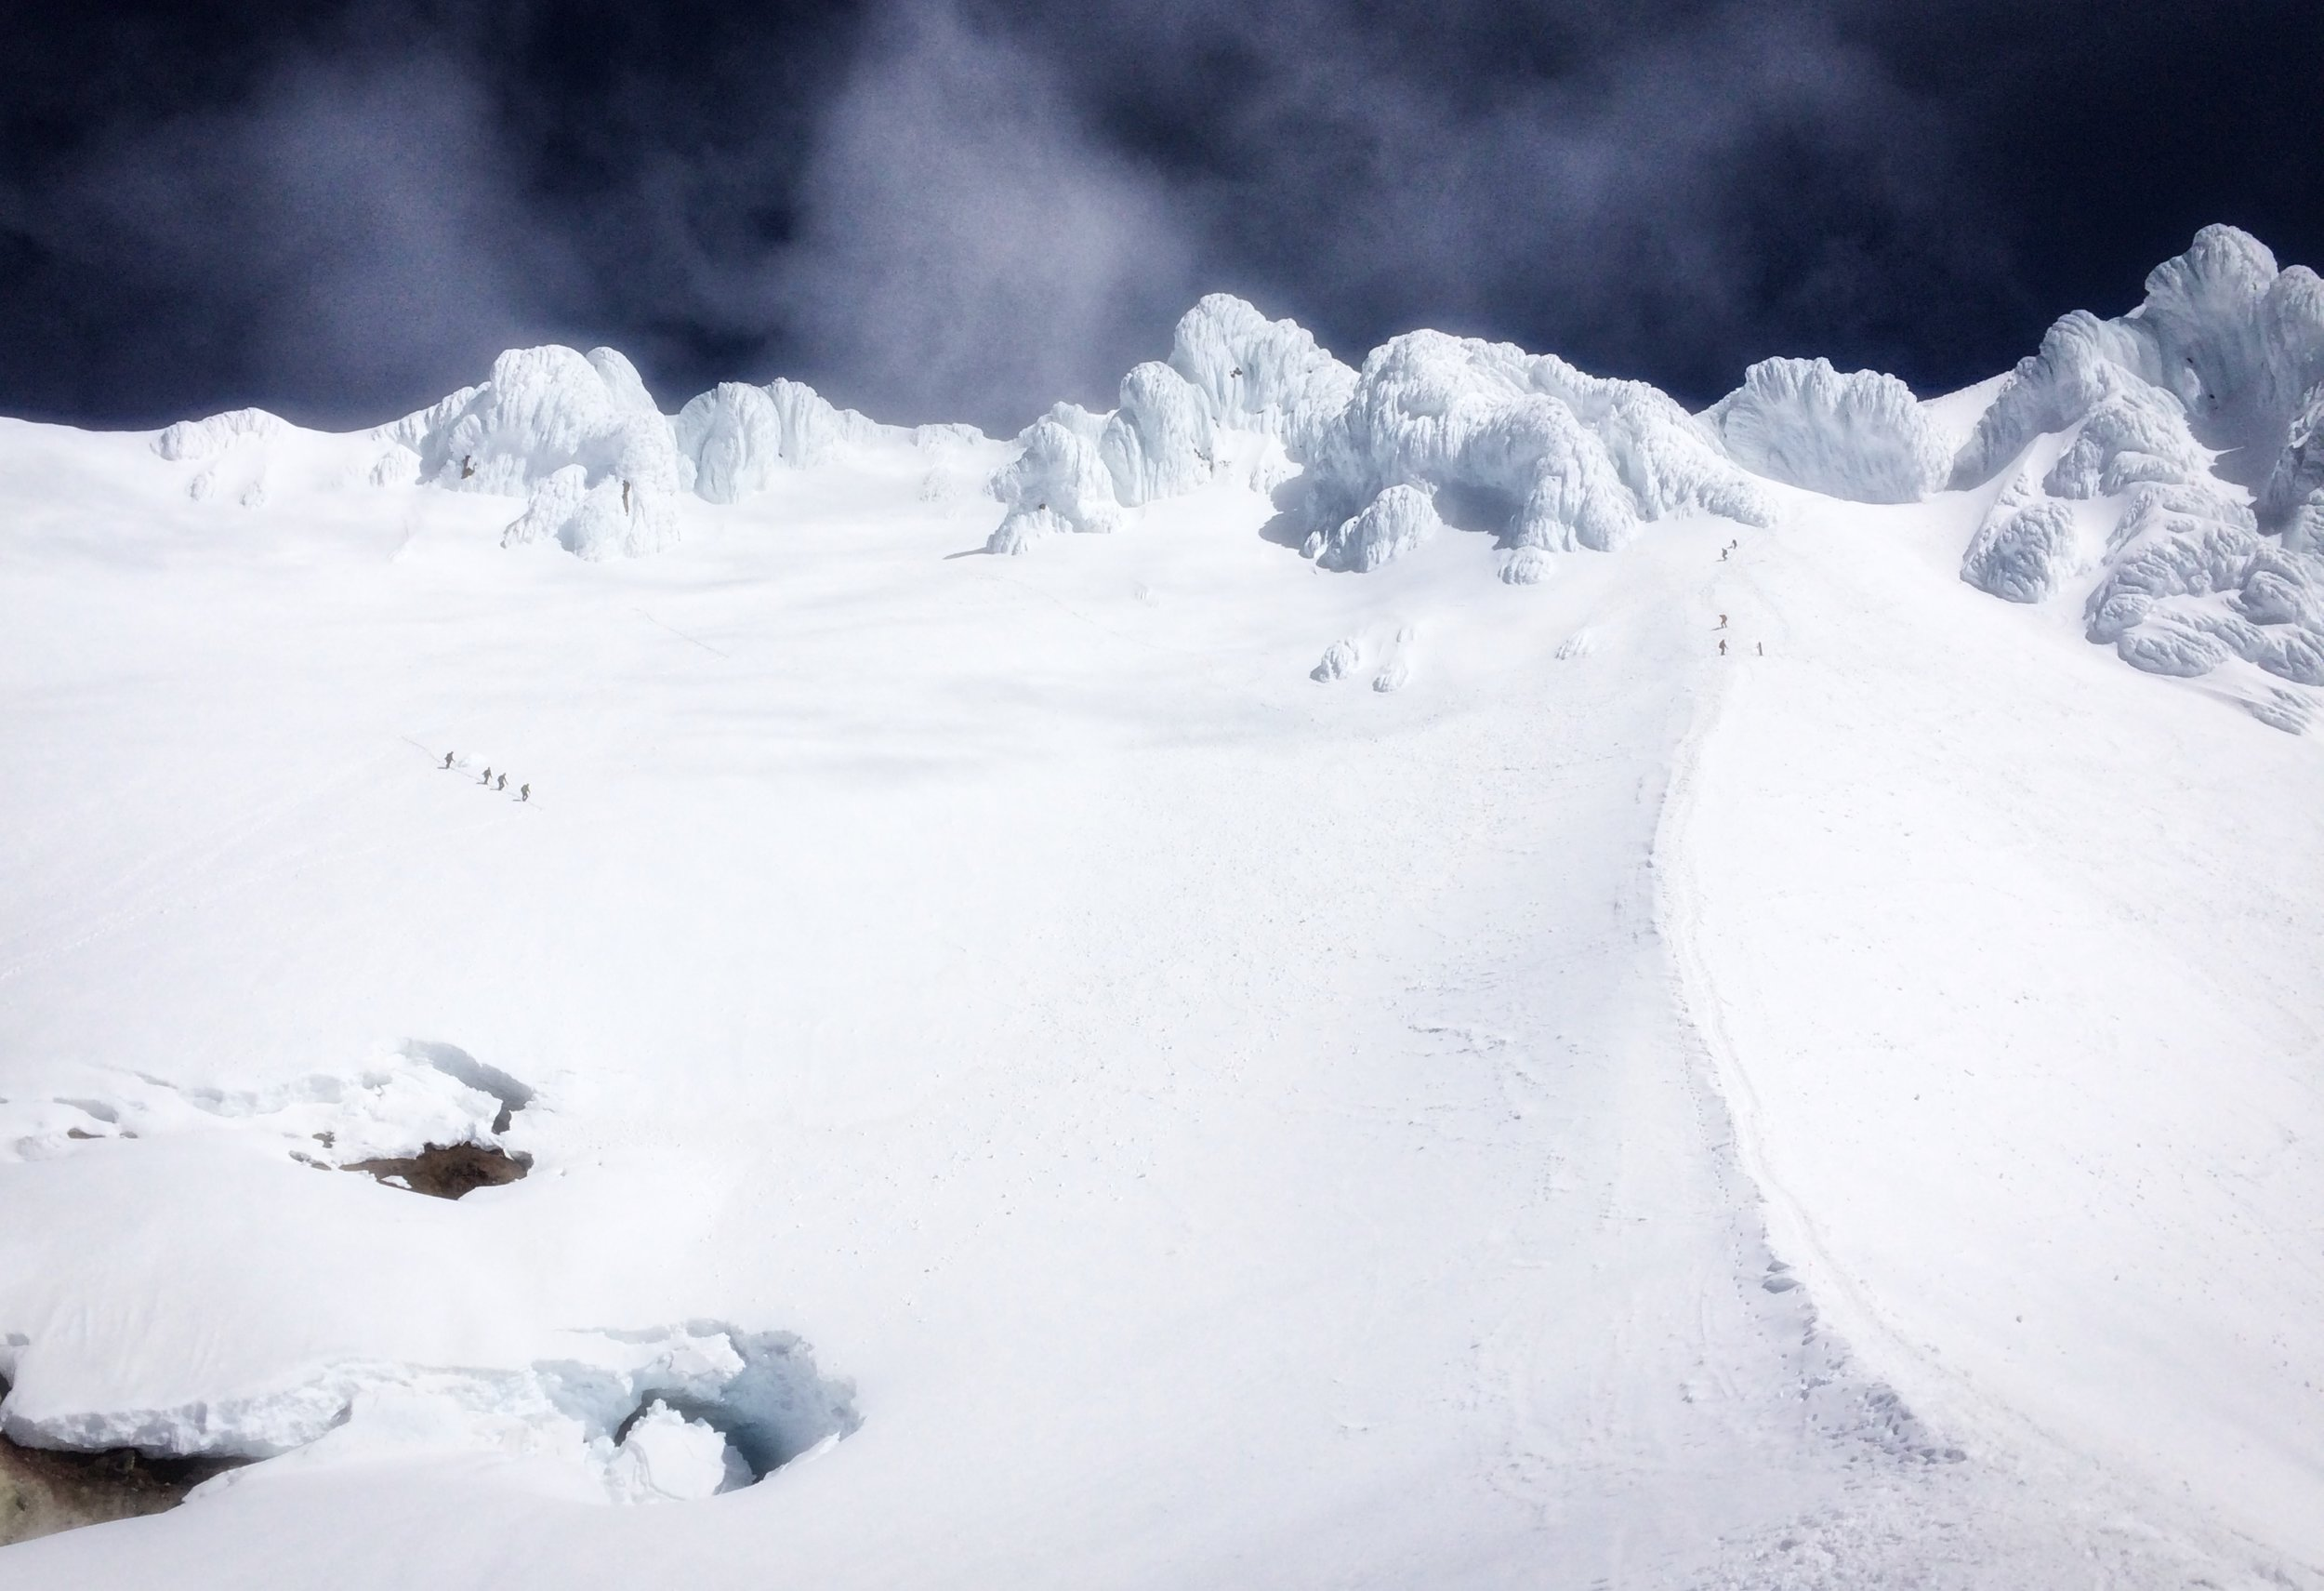 Every year, climbers attempt the summit of Mount Hood in Oregon. Some make it, others turn back, and some never make it home. Mount Hood has a history of taking lives so it's important to be prepared mentally and physically for the task. It's not a mountain to take lightly. Wy'east is wild and makes her own rules.